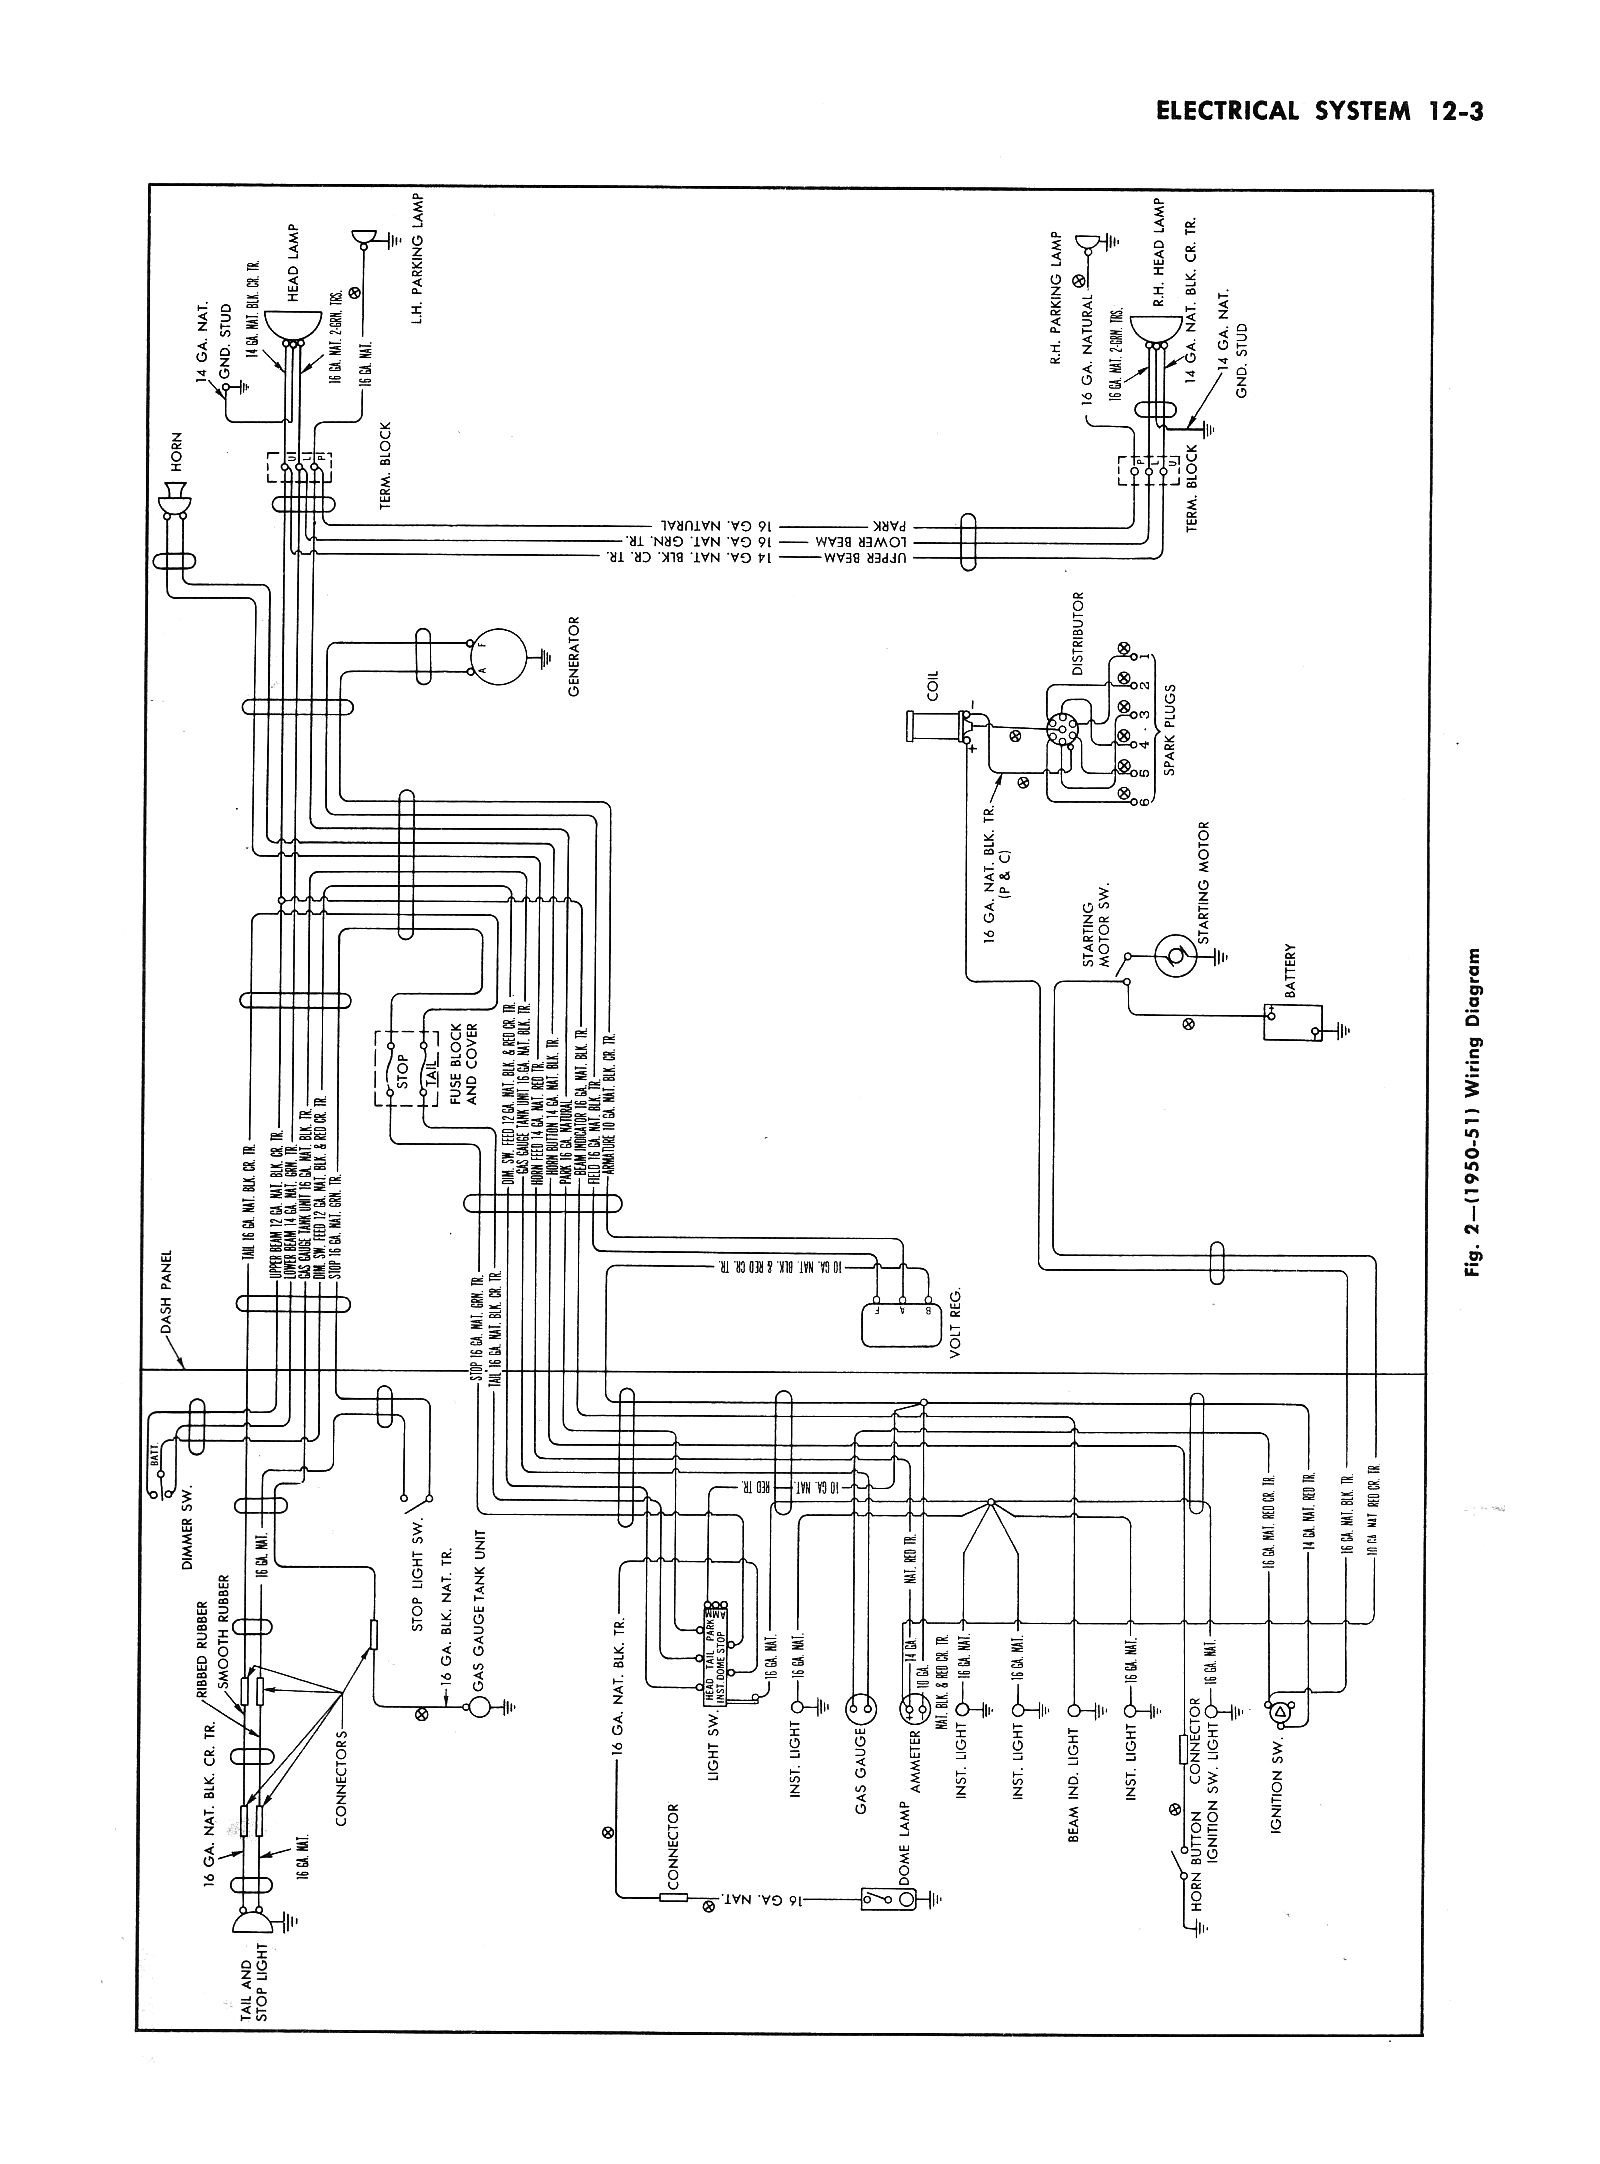 50ctsm1203 chevy wiring diagrams 66 Chevy Headlight Switch Wiring Diagram at readyjetset.co